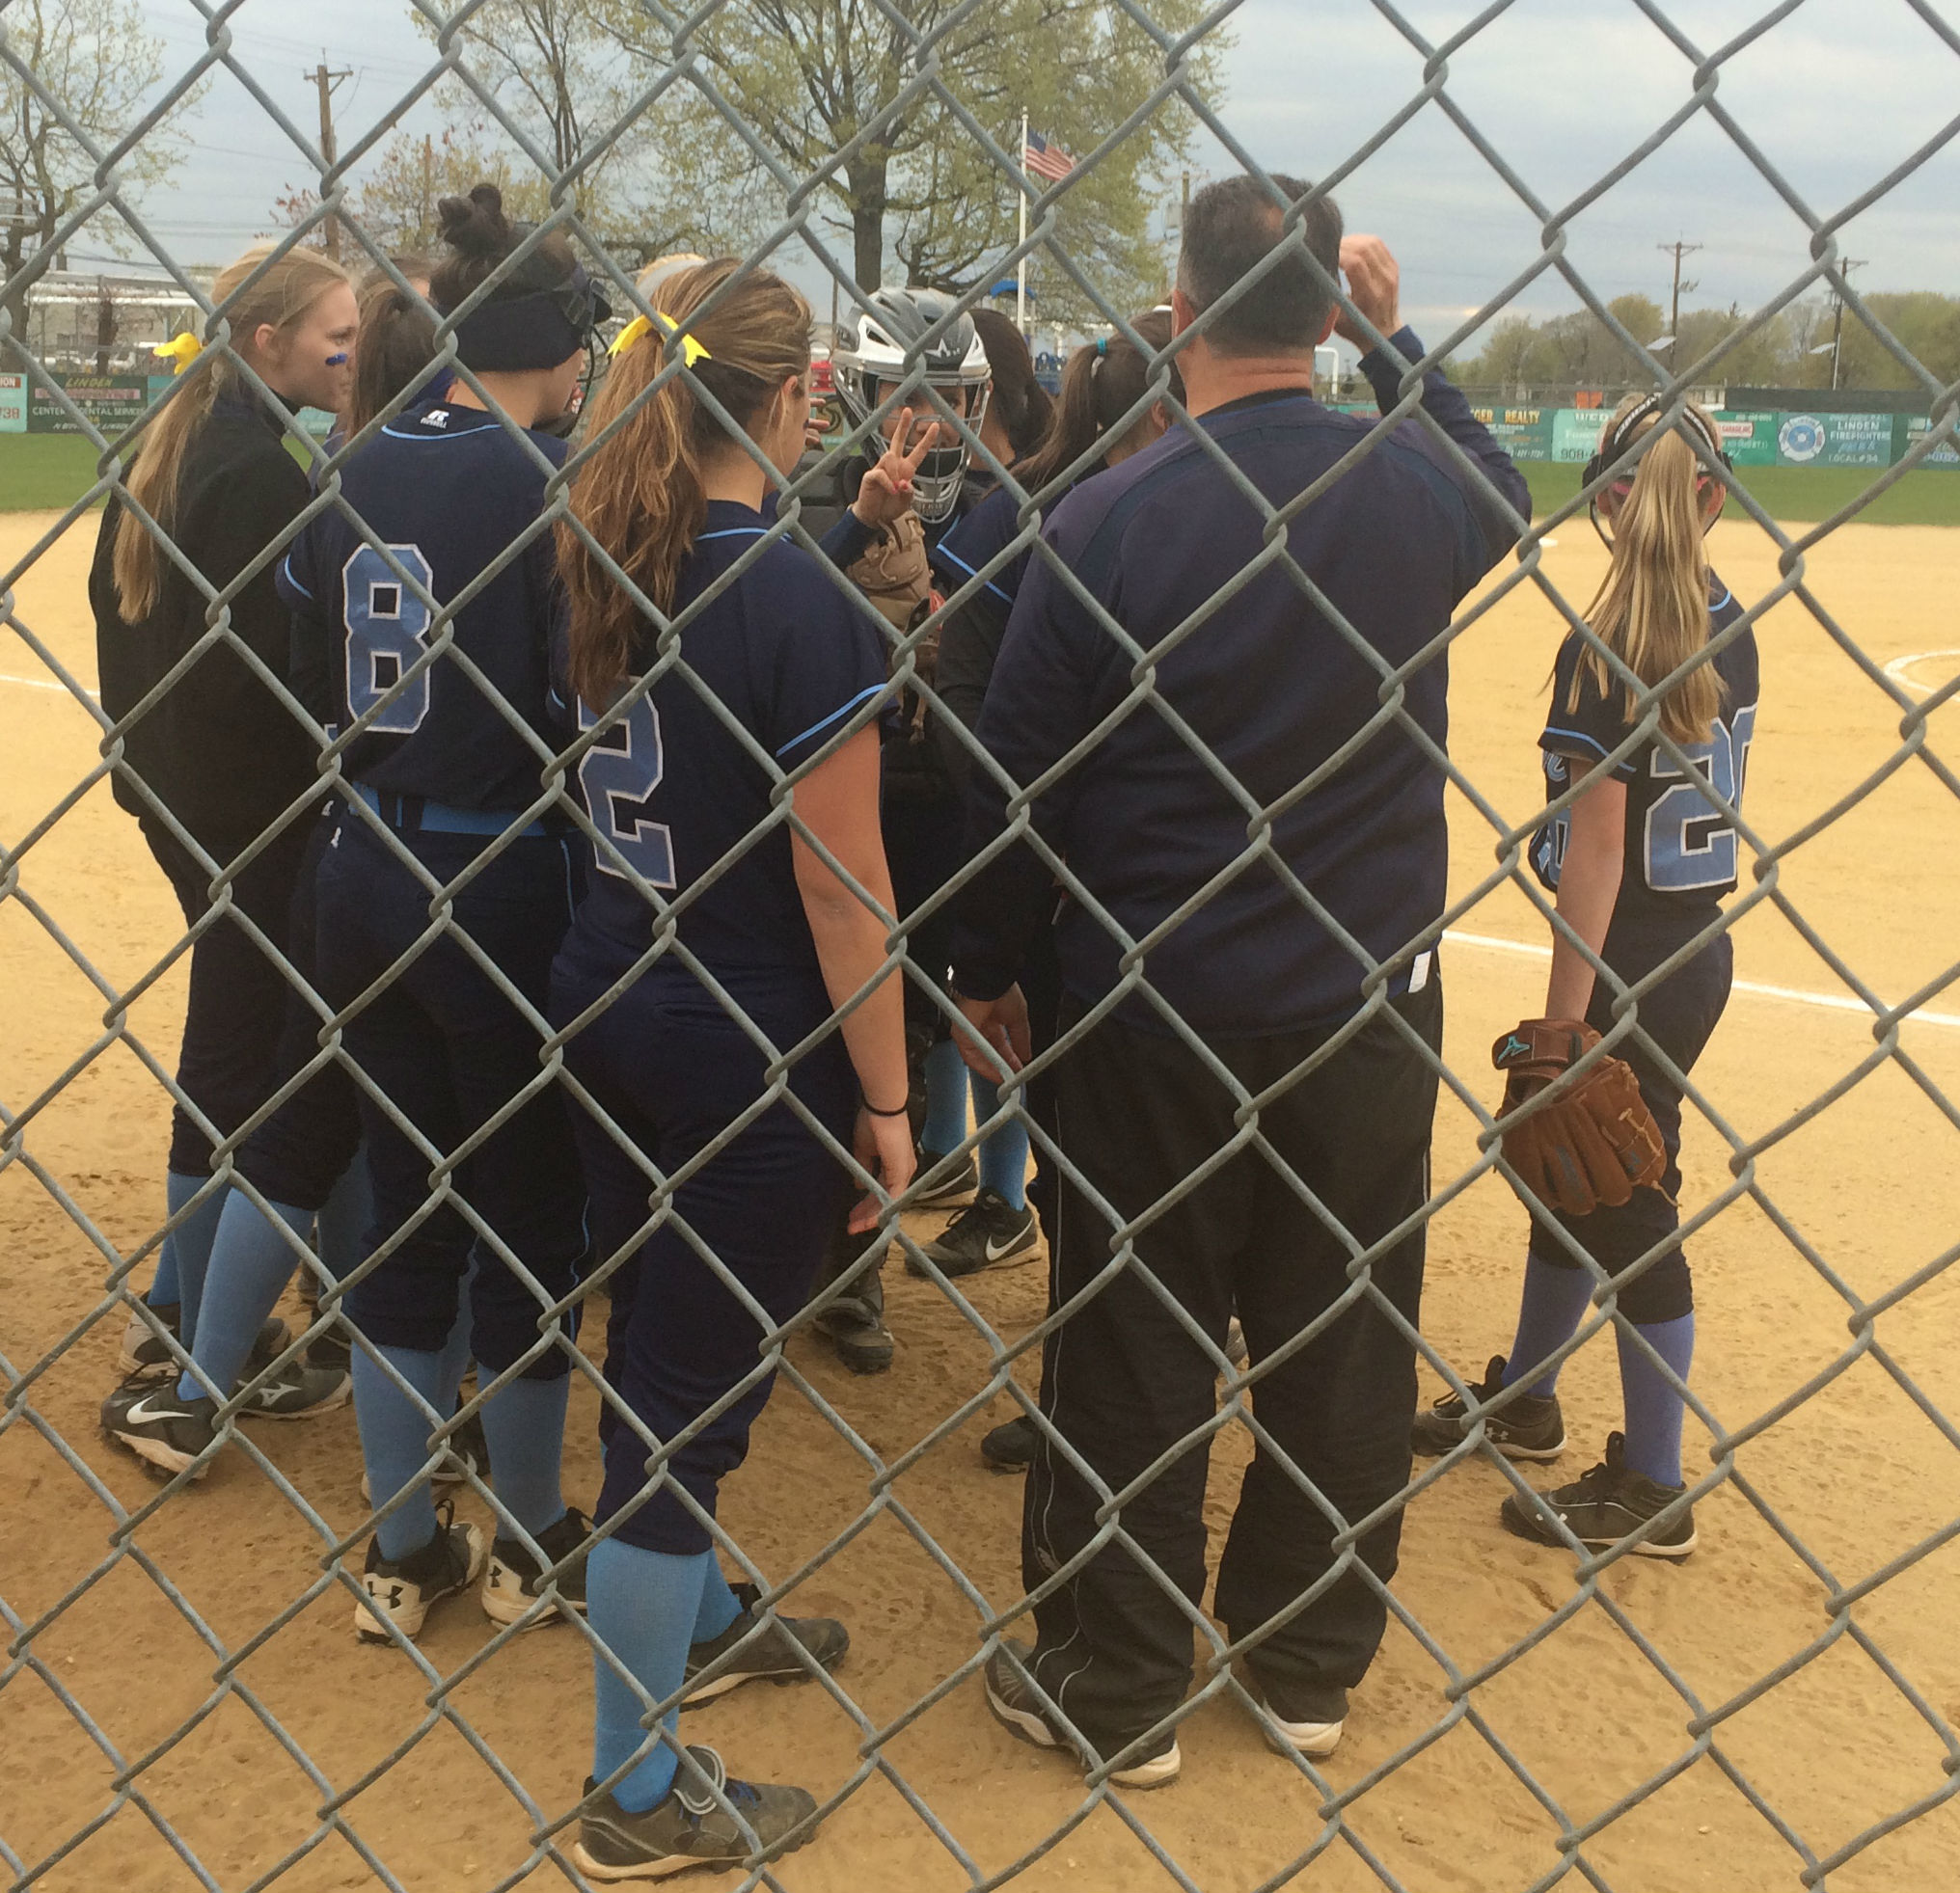 4e3883e4f76c05aa6310_ALJ-Brearley_Softball_UCT_Quarterfinals_B.jpg